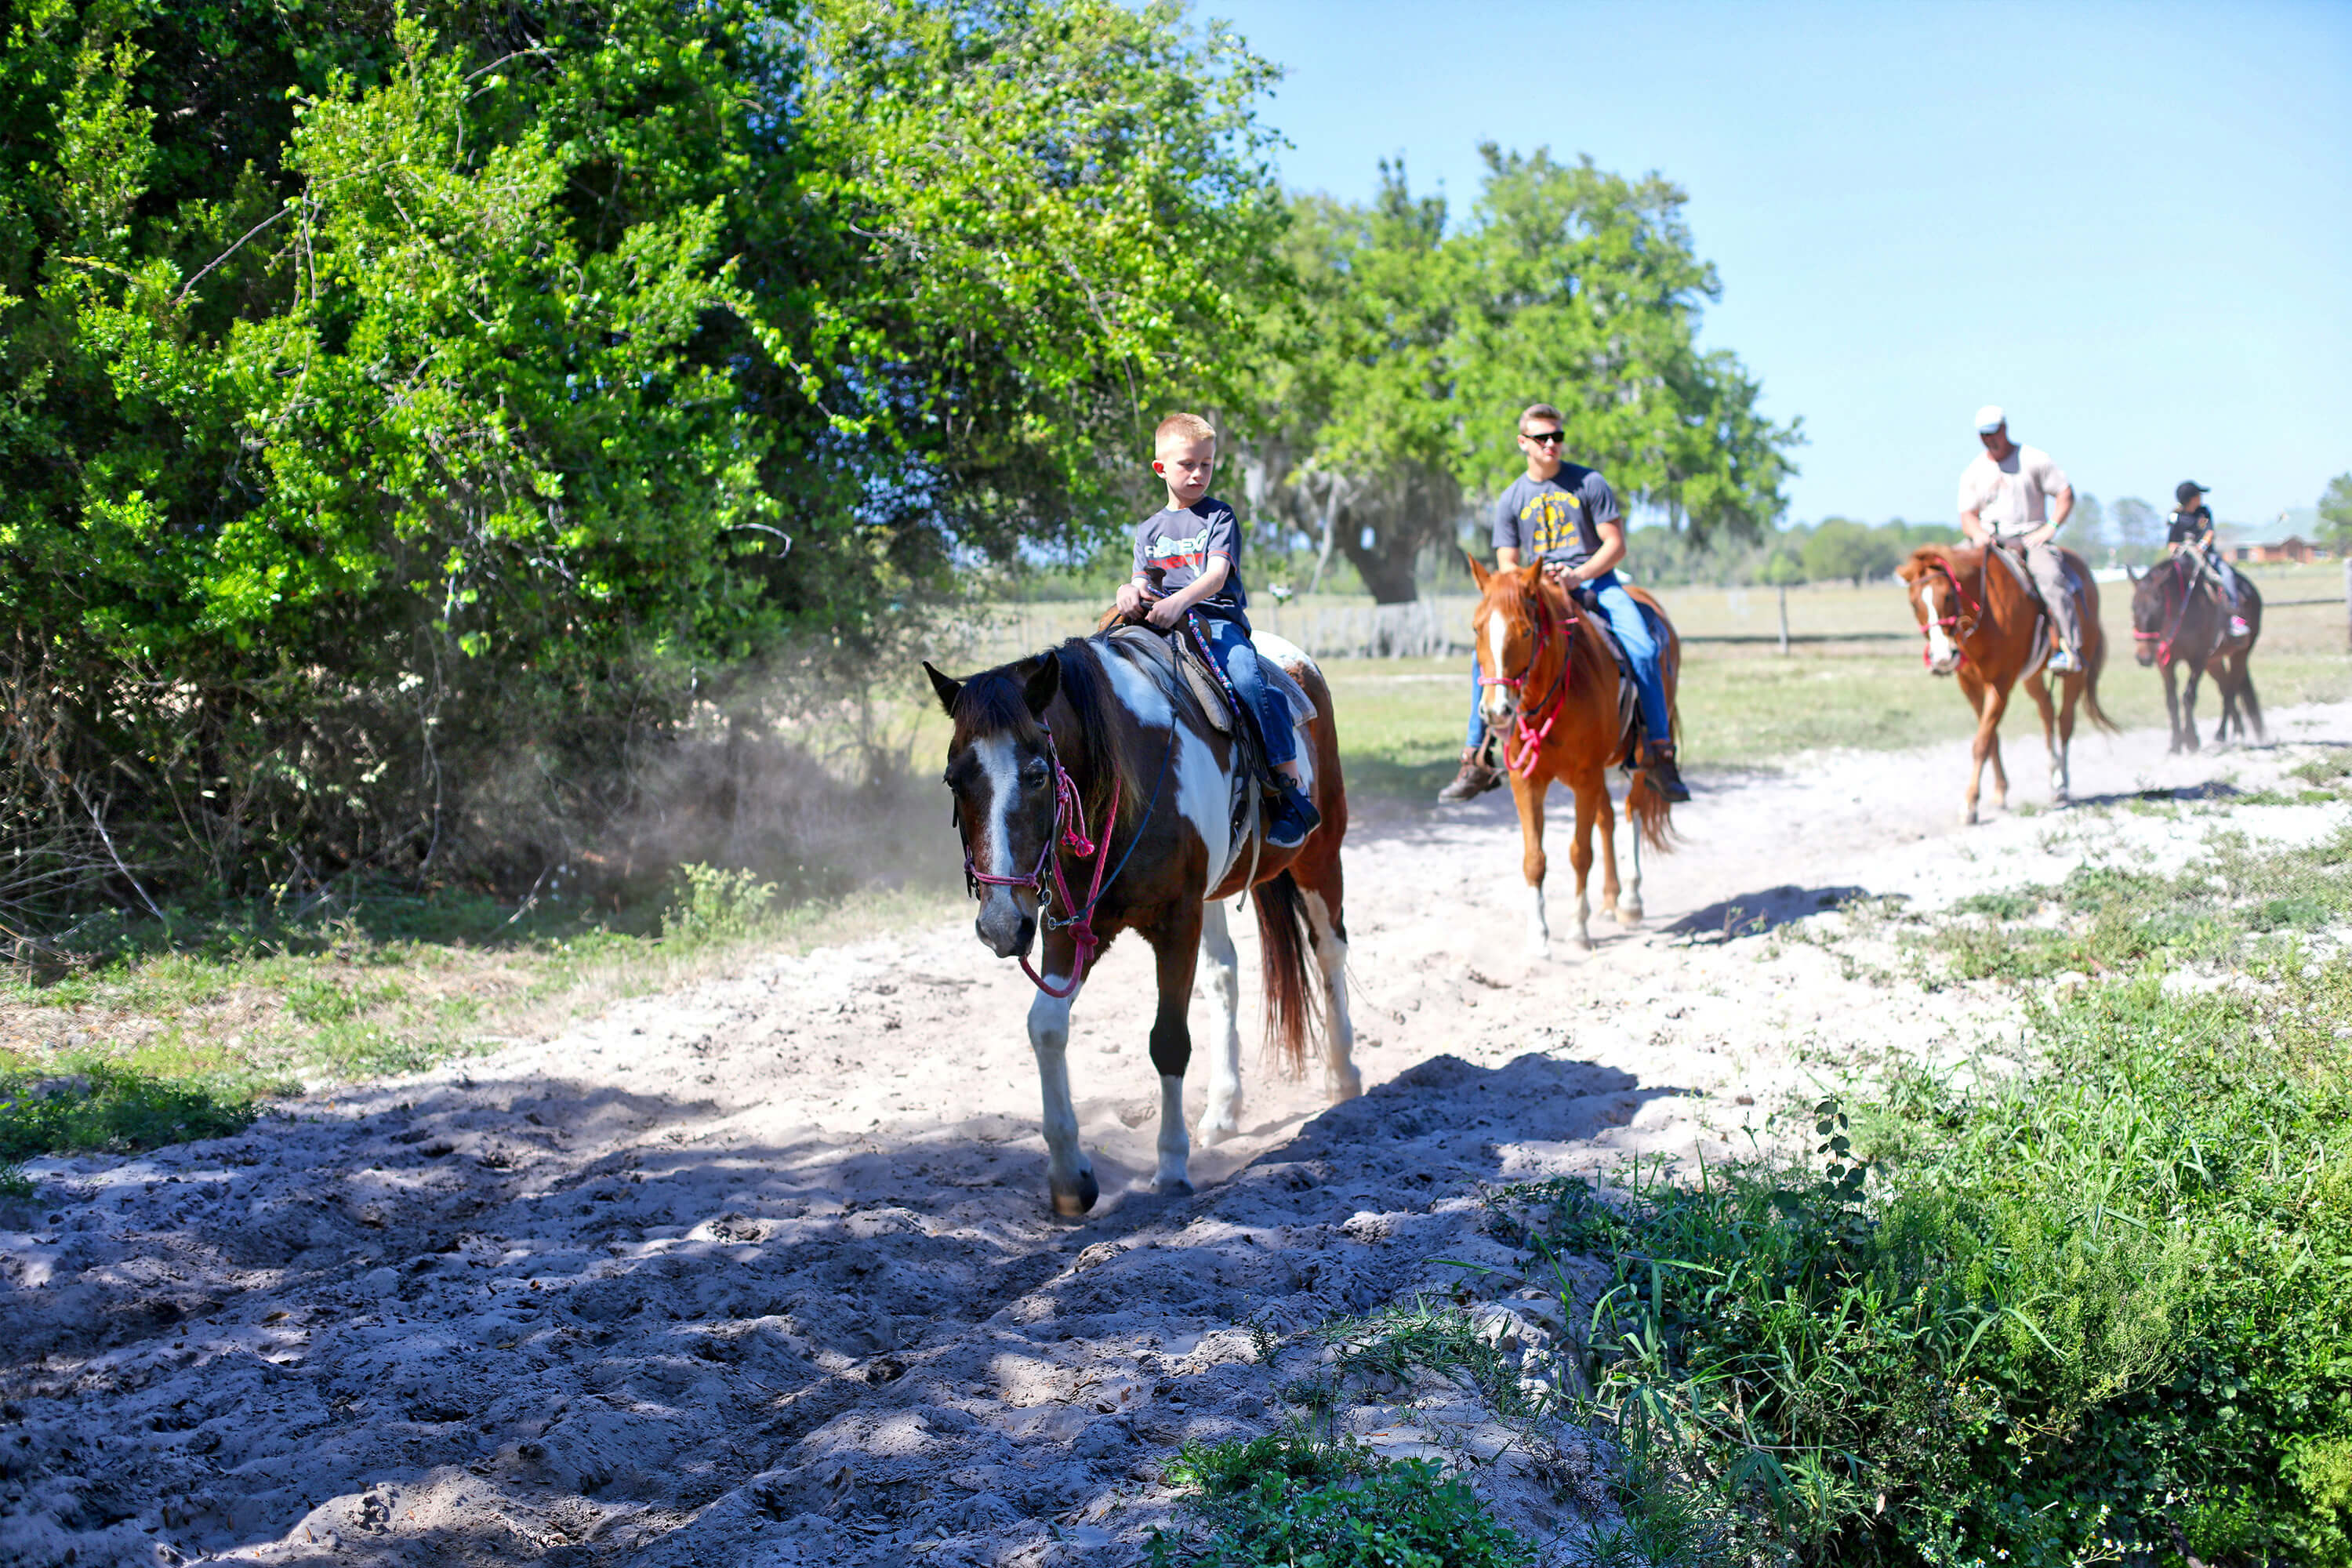 Horseback Riding at the Ranch | Westgate River Ranch Resort & Rodeo | Westgate Resorts